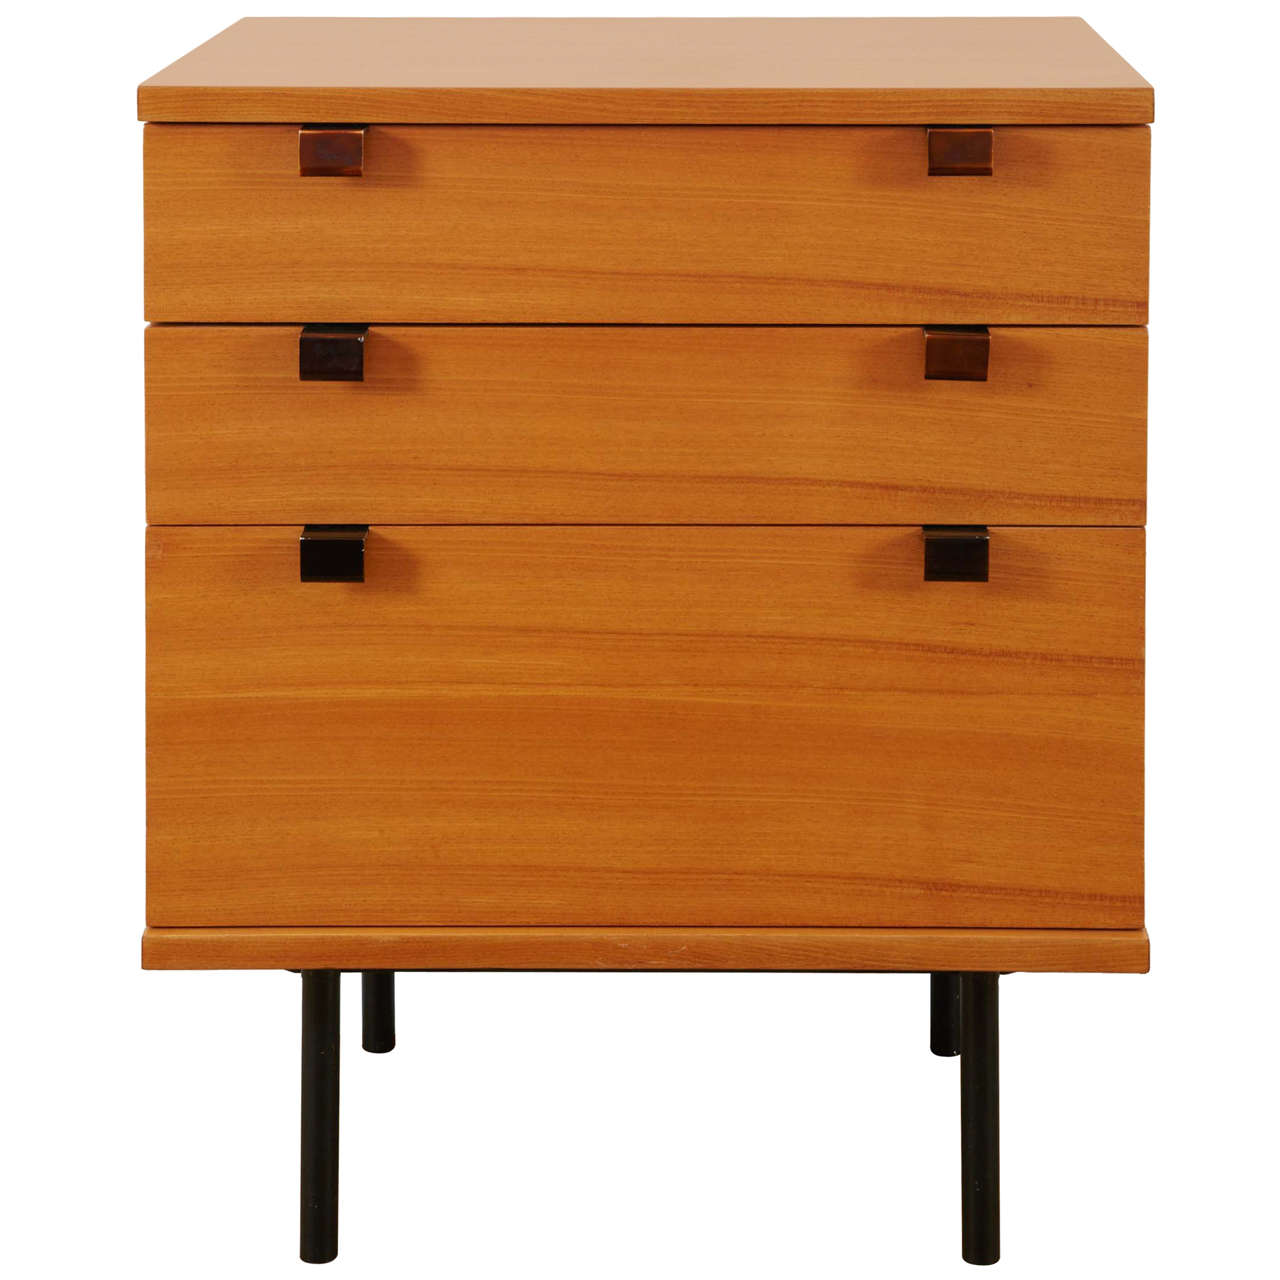 chest of drawers model 219 by alain richard meubles tv edition 1954 1955 at 1stdibs. Black Bedroom Furniture Sets. Home Design Ideas